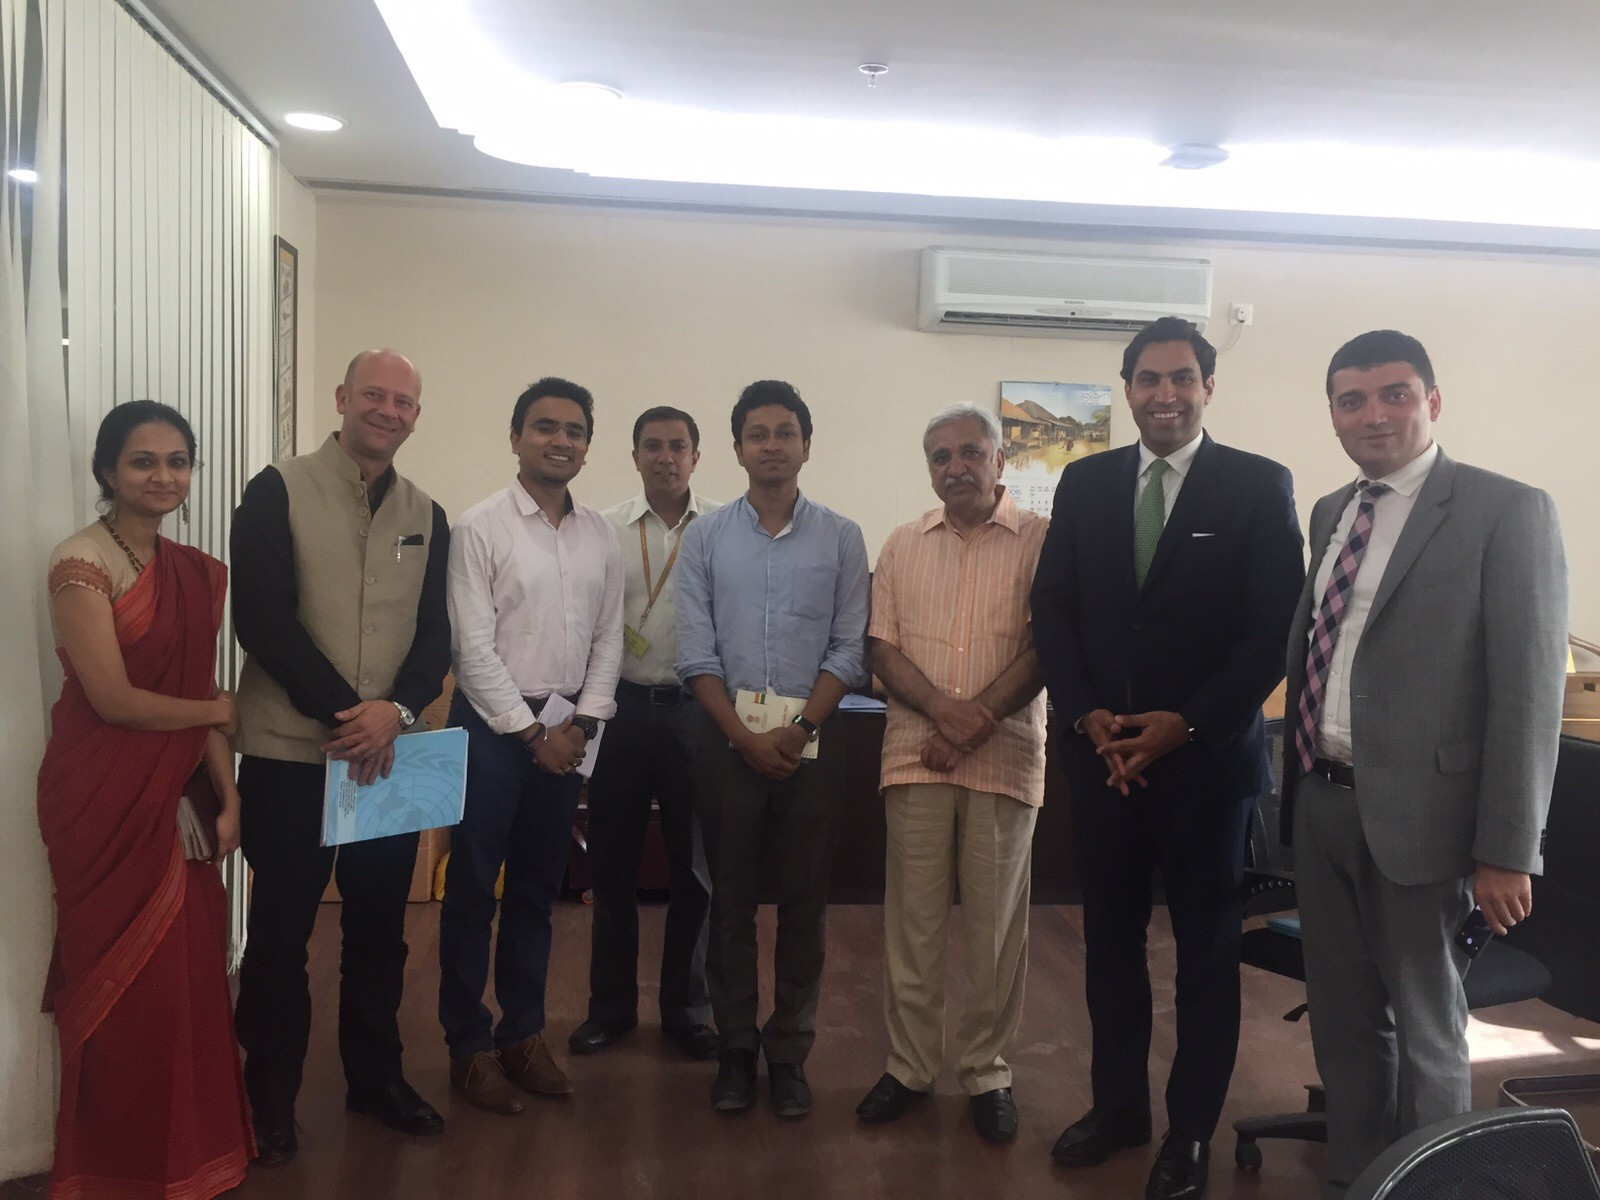 meetings with officials at India's Ministry of Youth Affairs and Sports and the Ministry of Skill Development and Entrepreneurship